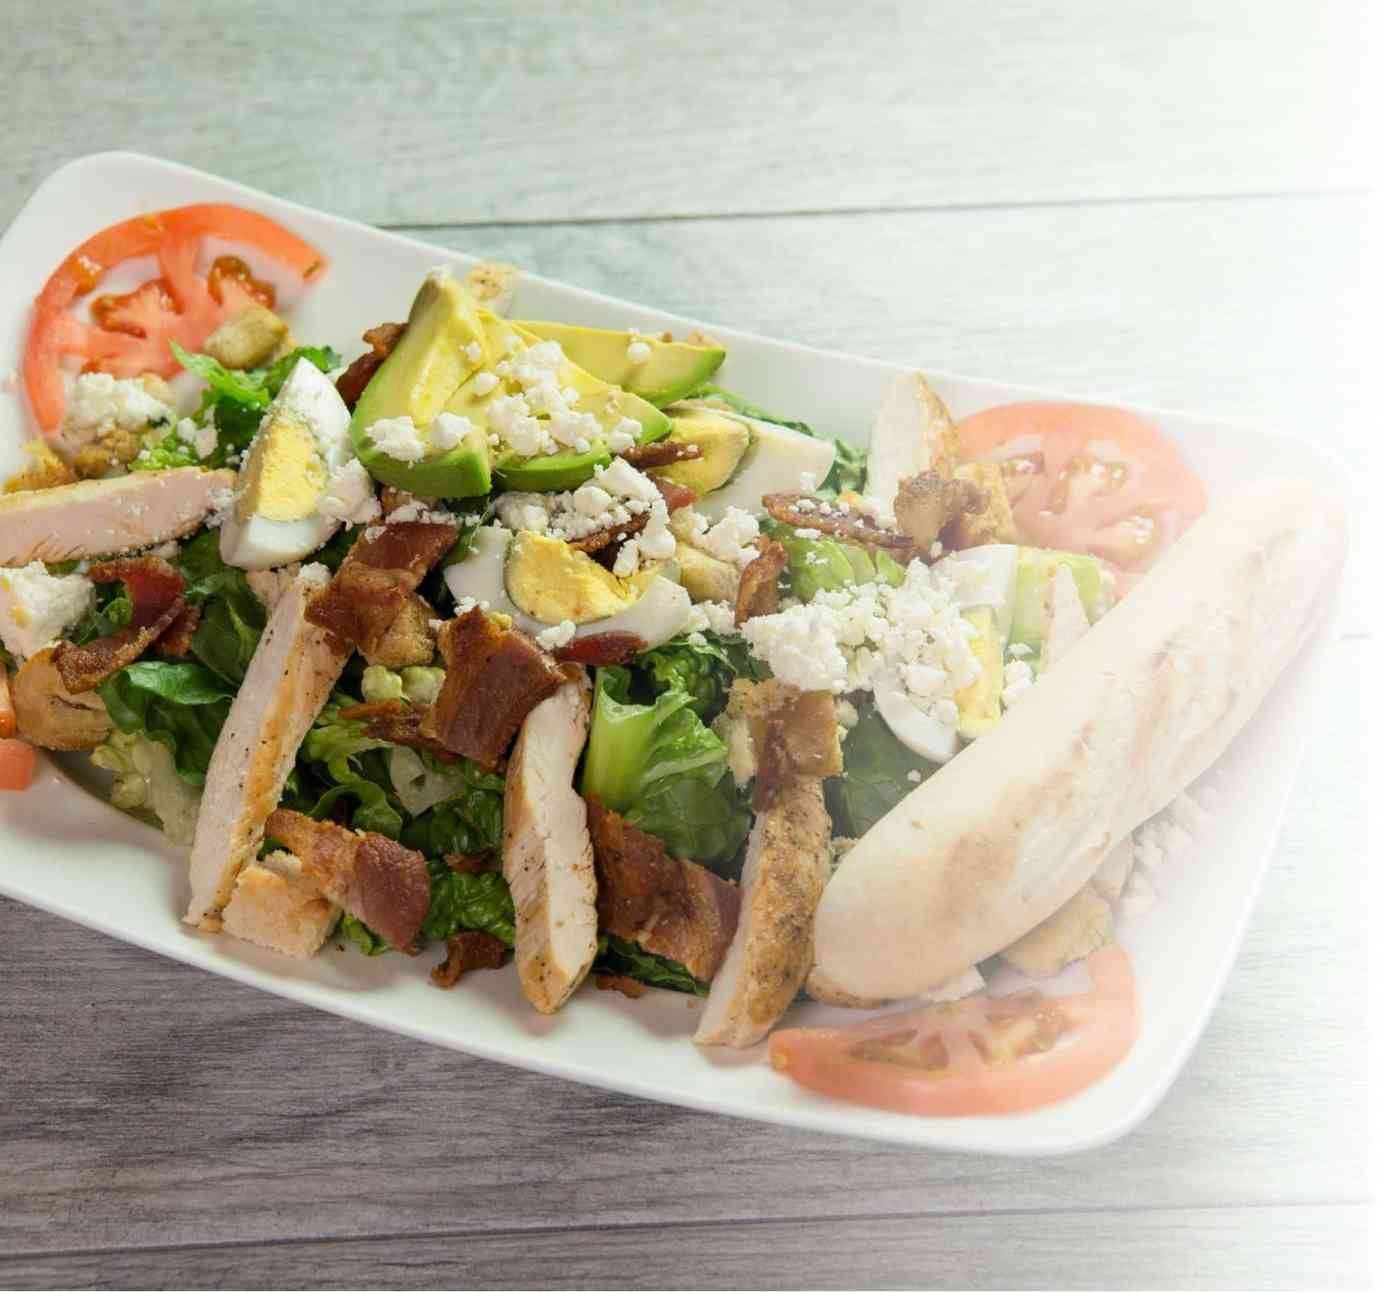 Sandwiches and salads in Boulder